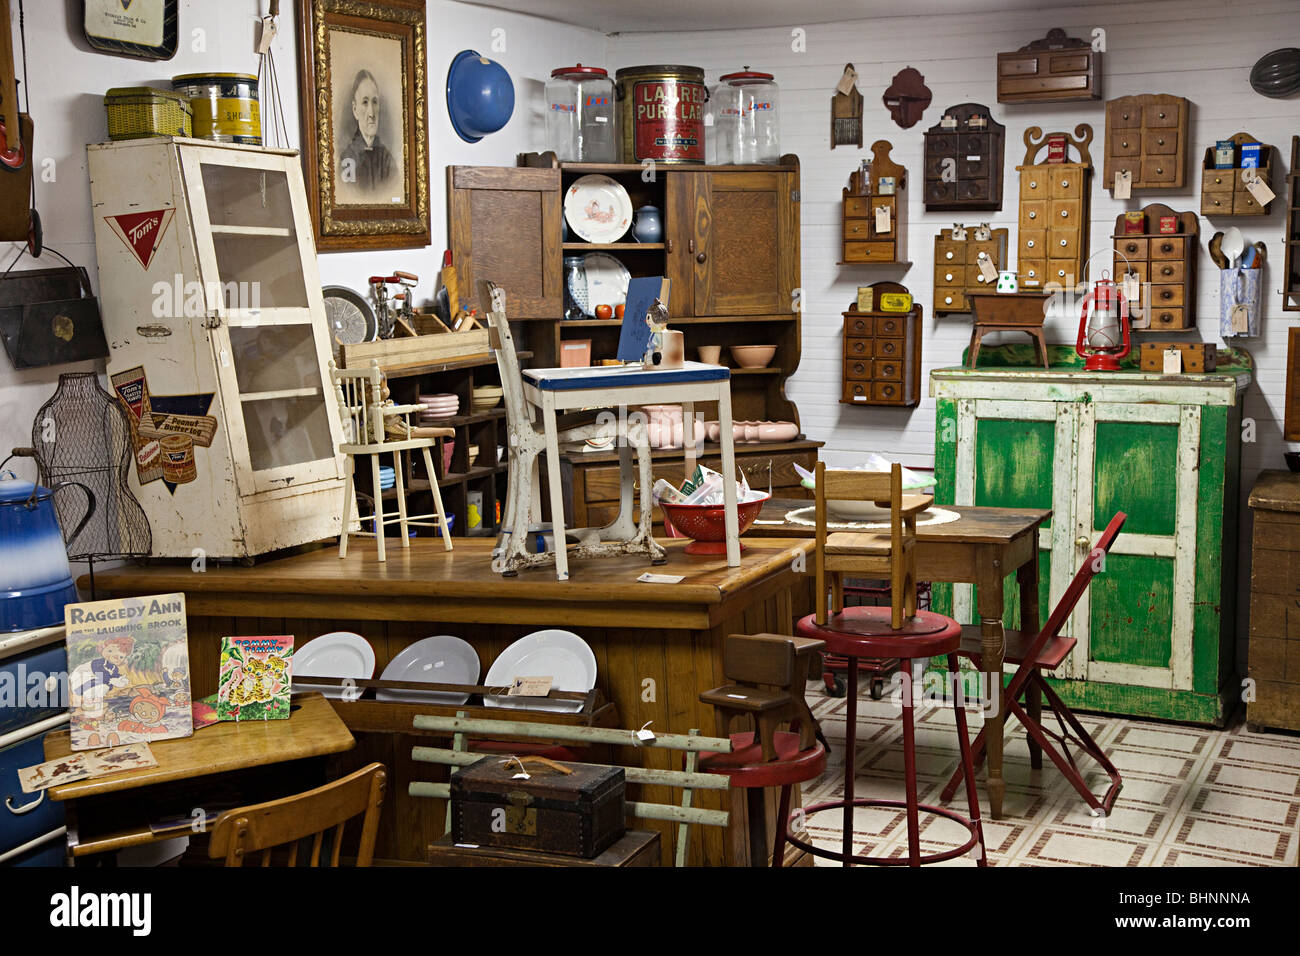 Furniture Market Flea Market Shop With Furniture And Goods For Sale Texas Usa Stock